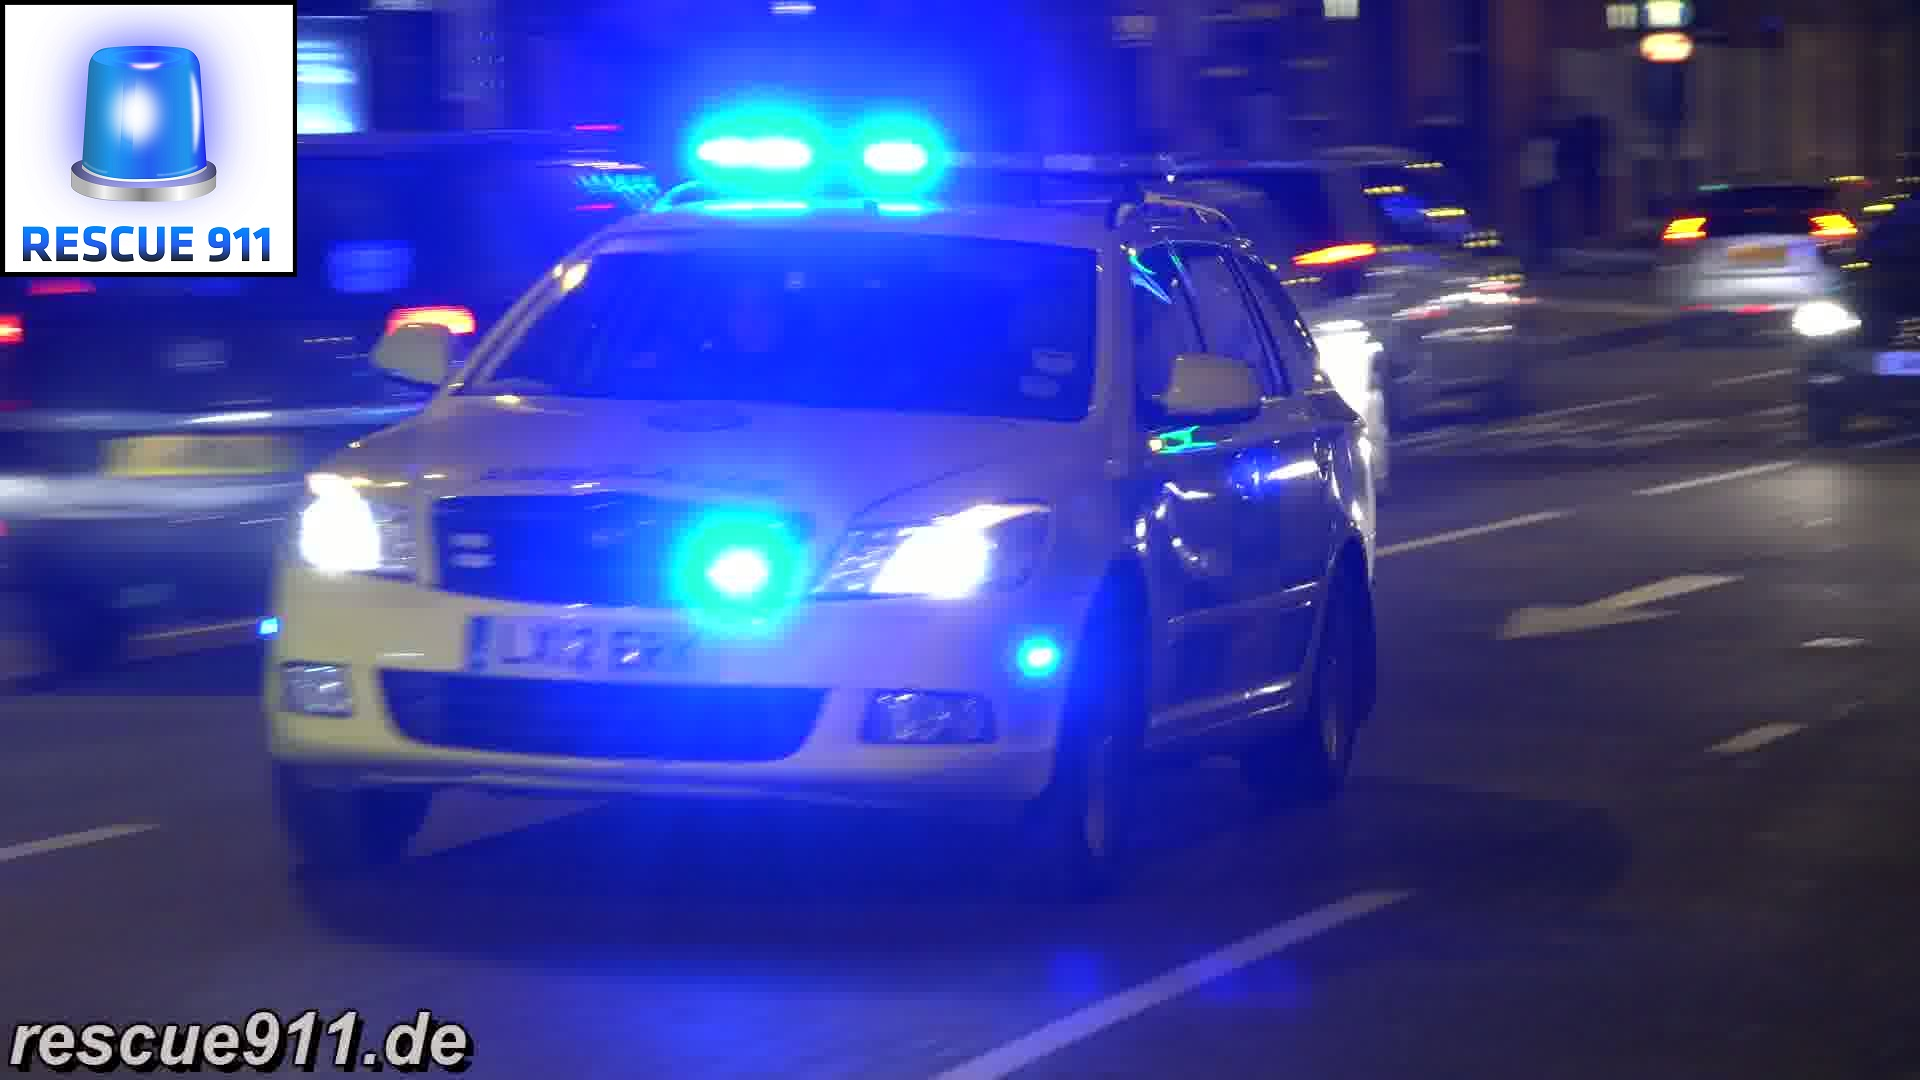 3x Police Carrier MET + Rapid Response Vehicle LAS (stream)